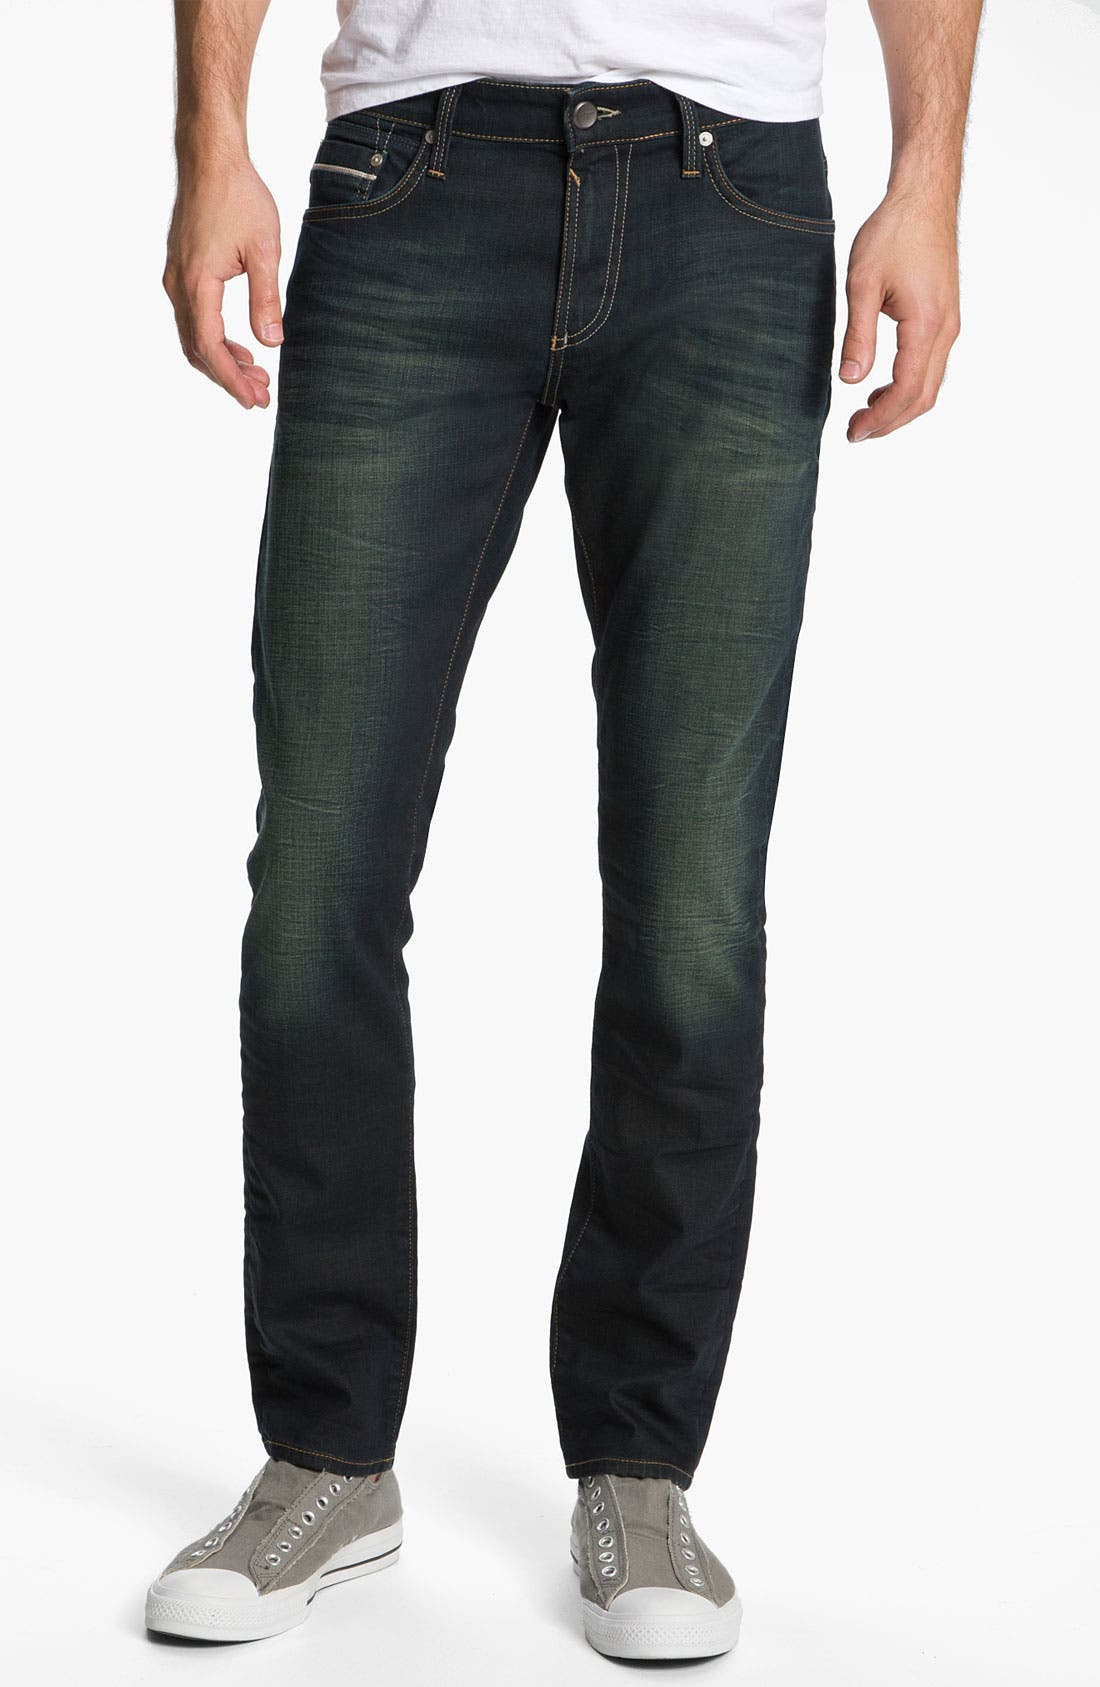 Alternate Image 1 Selected - Mavi Jeans 'Jake' Slim Fit Jeans (Smoke White Edge)